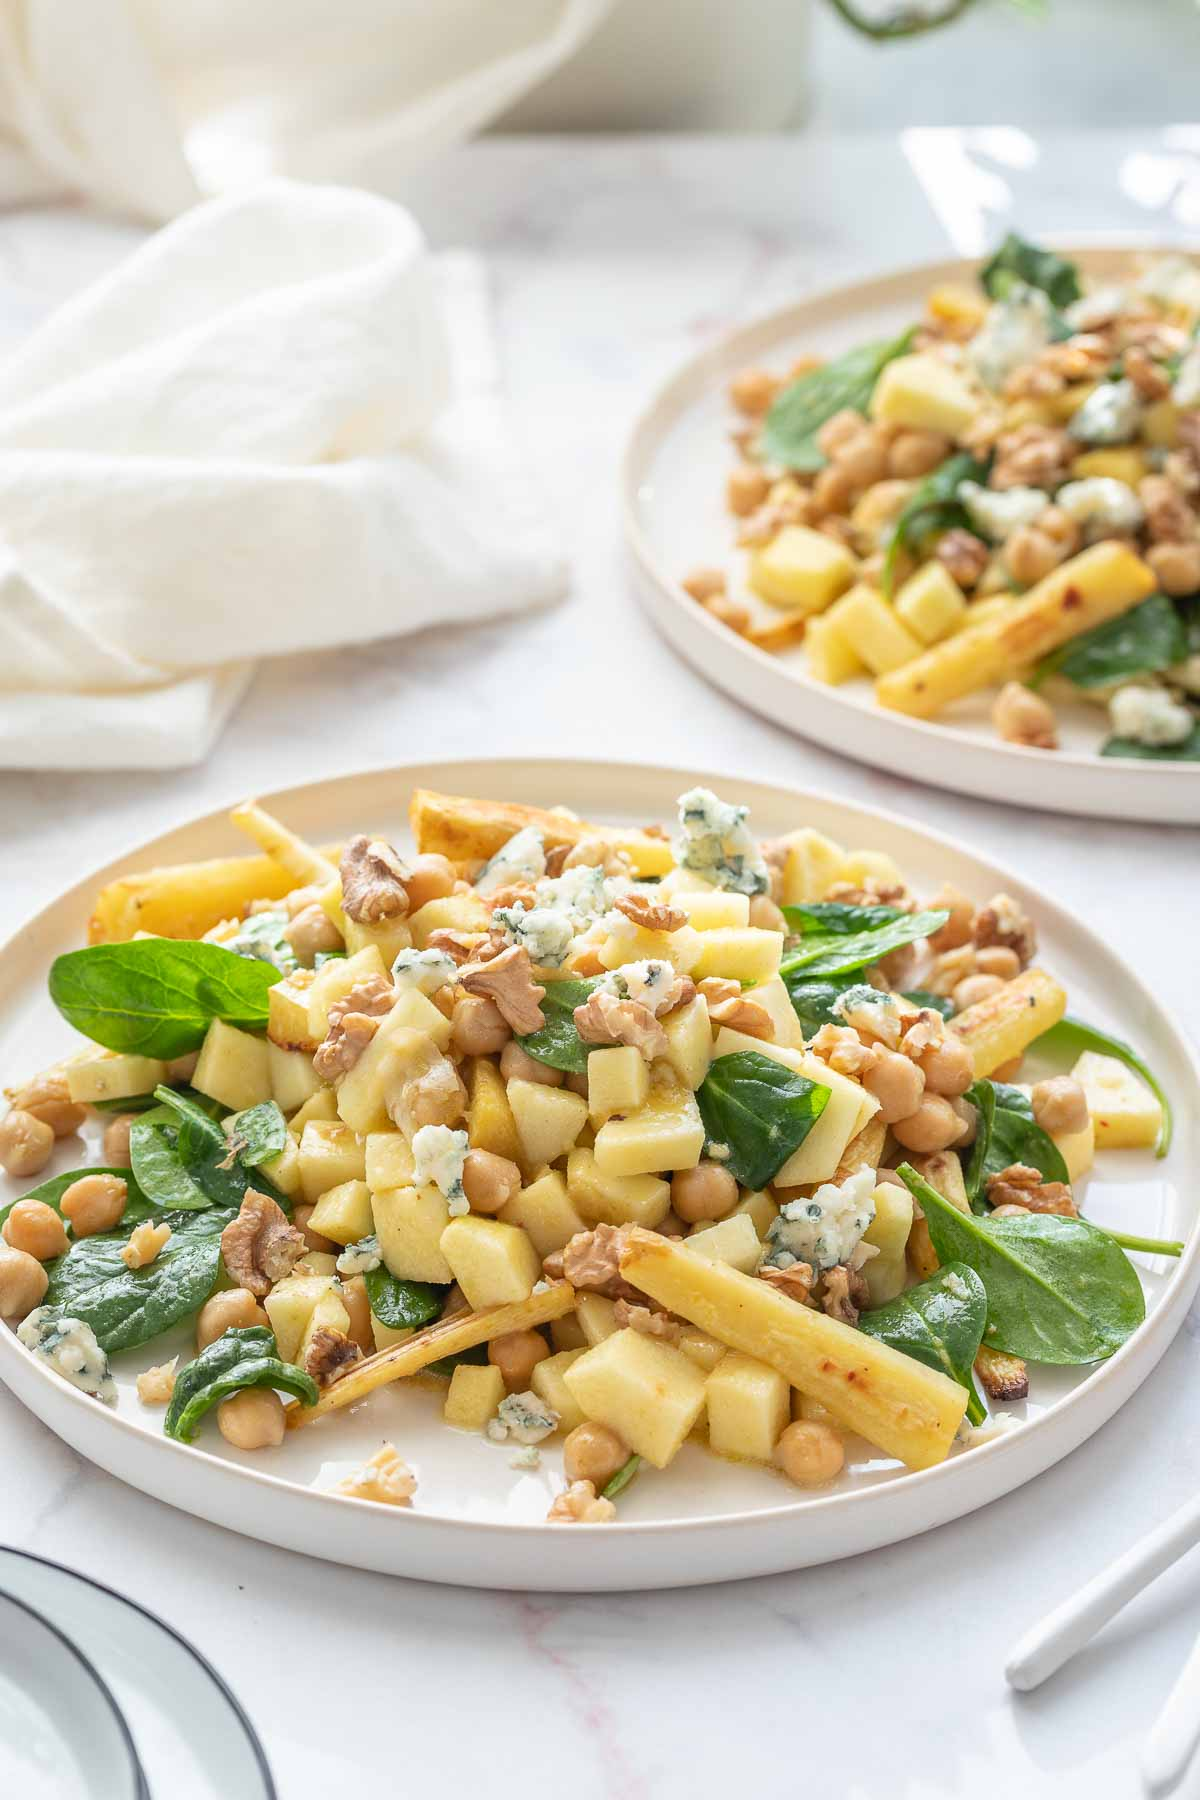 Parsnip Salad with Chickpeas, Apple, Walnuts & Blue Cheese